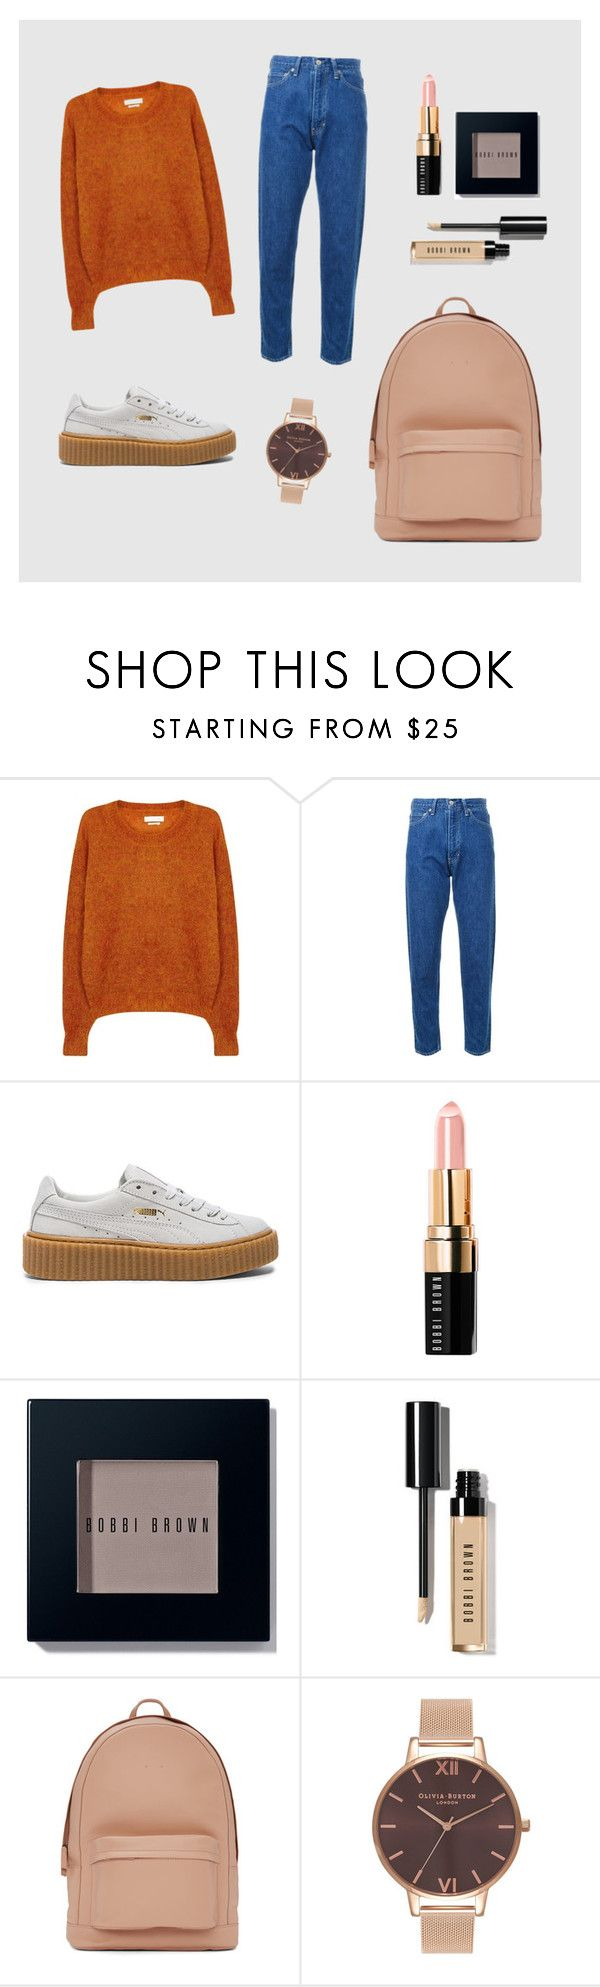 """Cool Neutrals"" by margaux5310 ❤ liked on Polyvore featuring Étoile Isabel Marant, CITYSHOP, Puma, Bobbi Brown Cosmetics, PB 0110 and Olivia Burton"